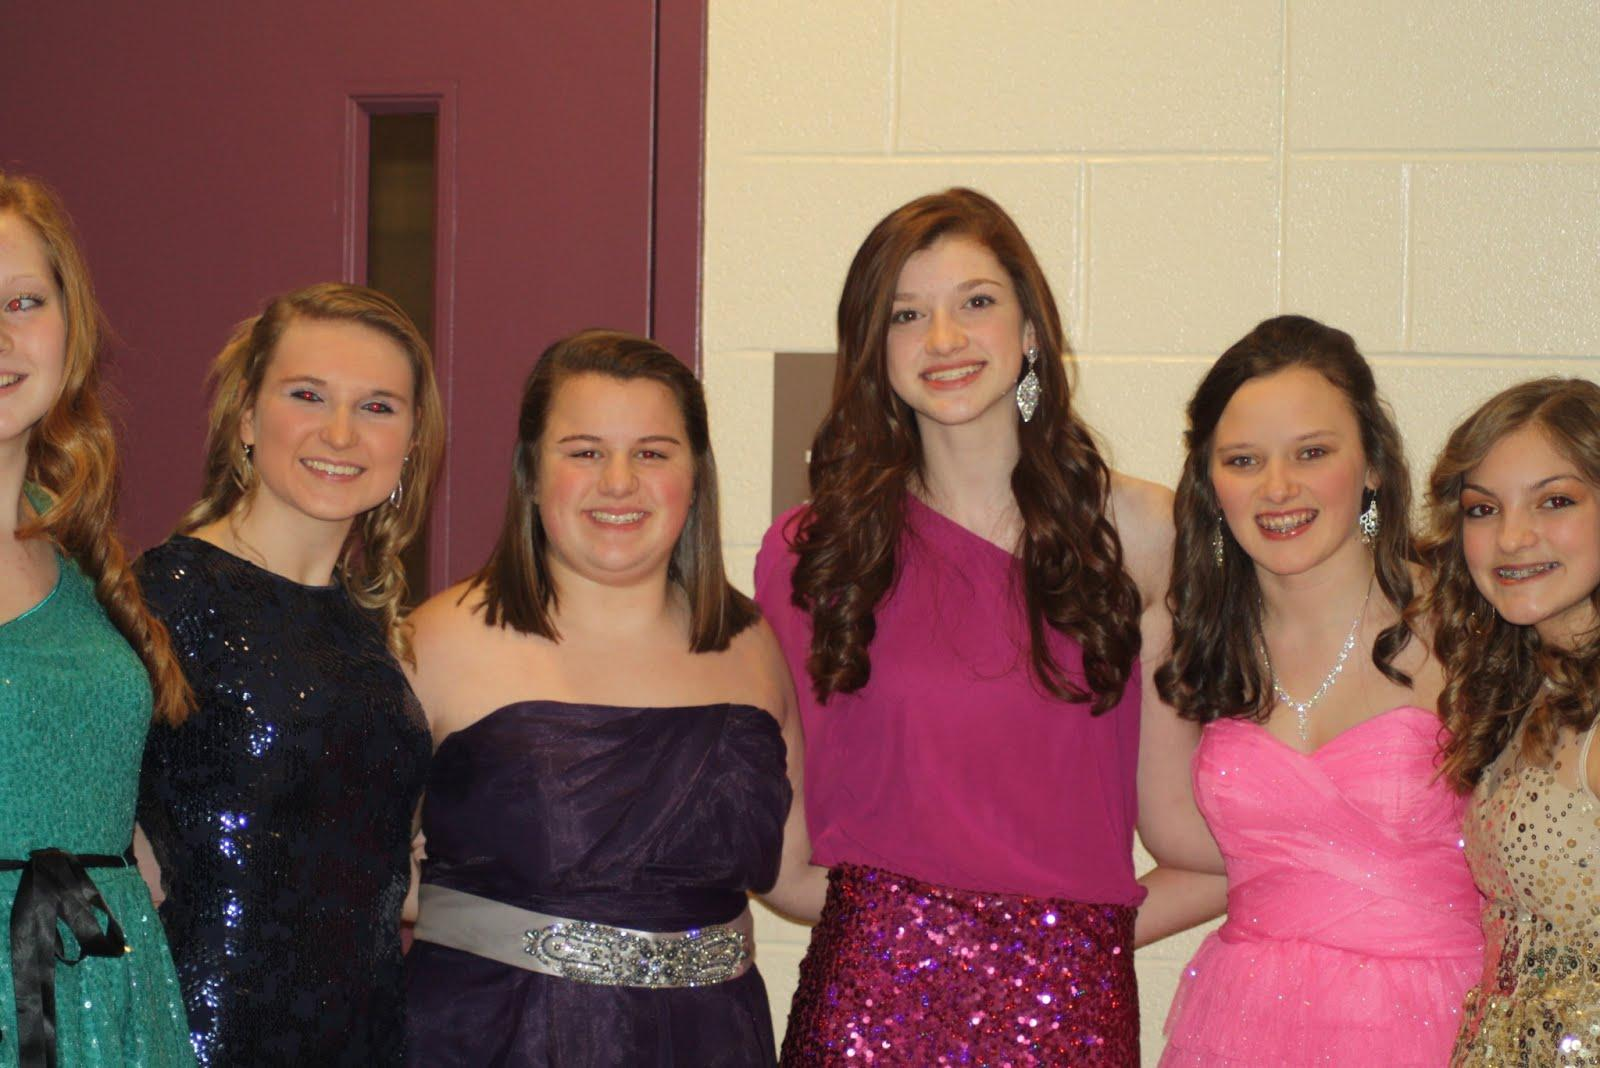 A group of friends spends time together at the Sweetheart's dance. From left to right: Kelsey Alwine, Tessa Fogle, Morgan Paris, Rachel Pearlman, Allie Rabold, and Madison Frank